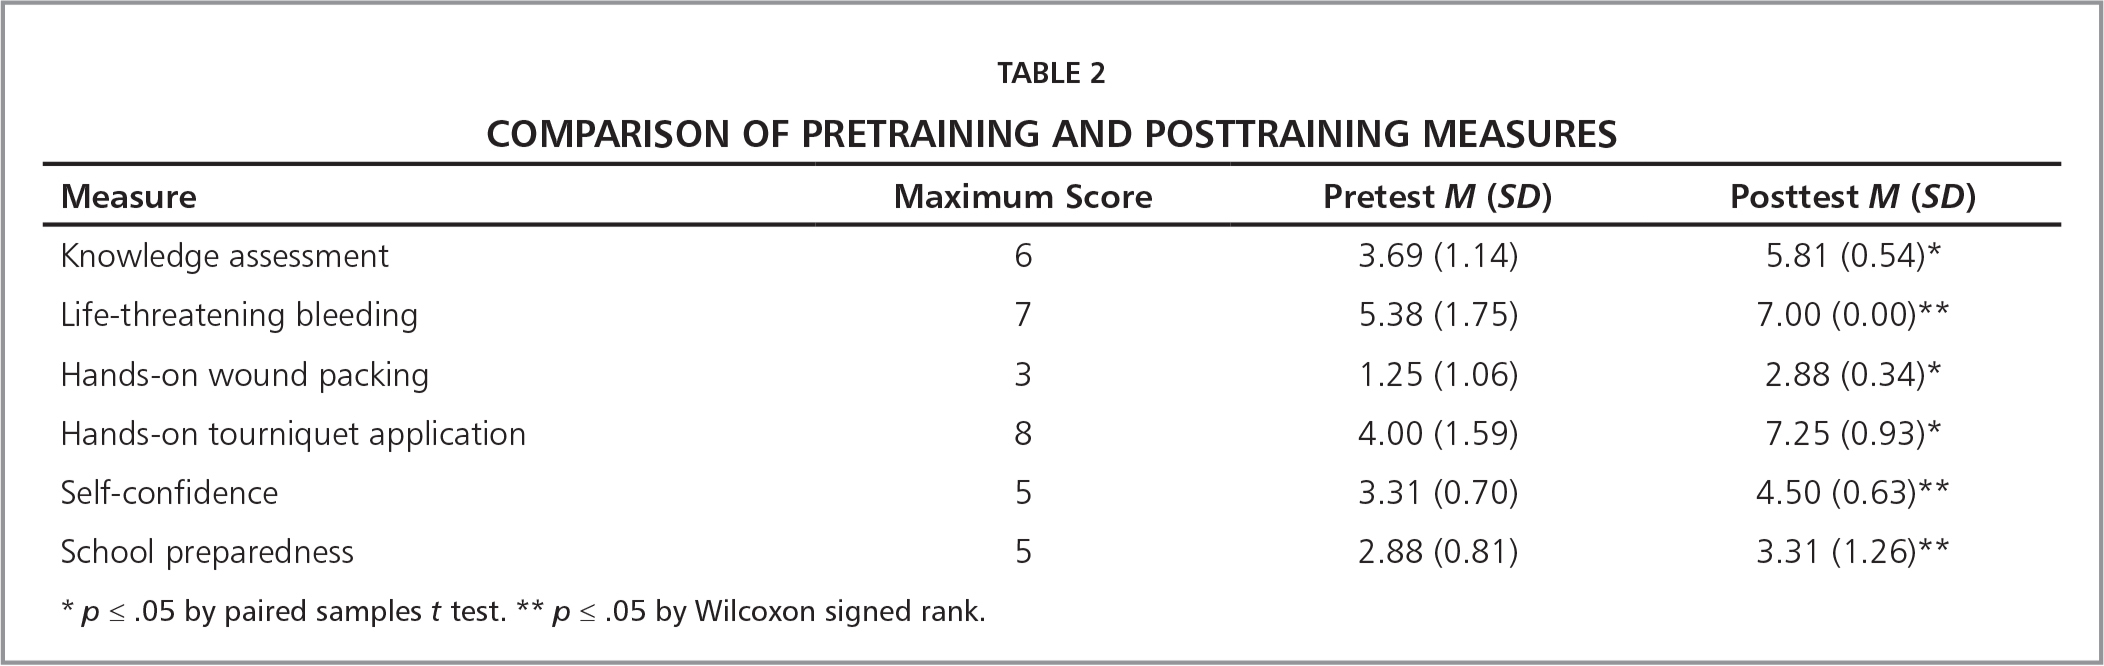 Comparison of Pretraining and Posttraining Measures